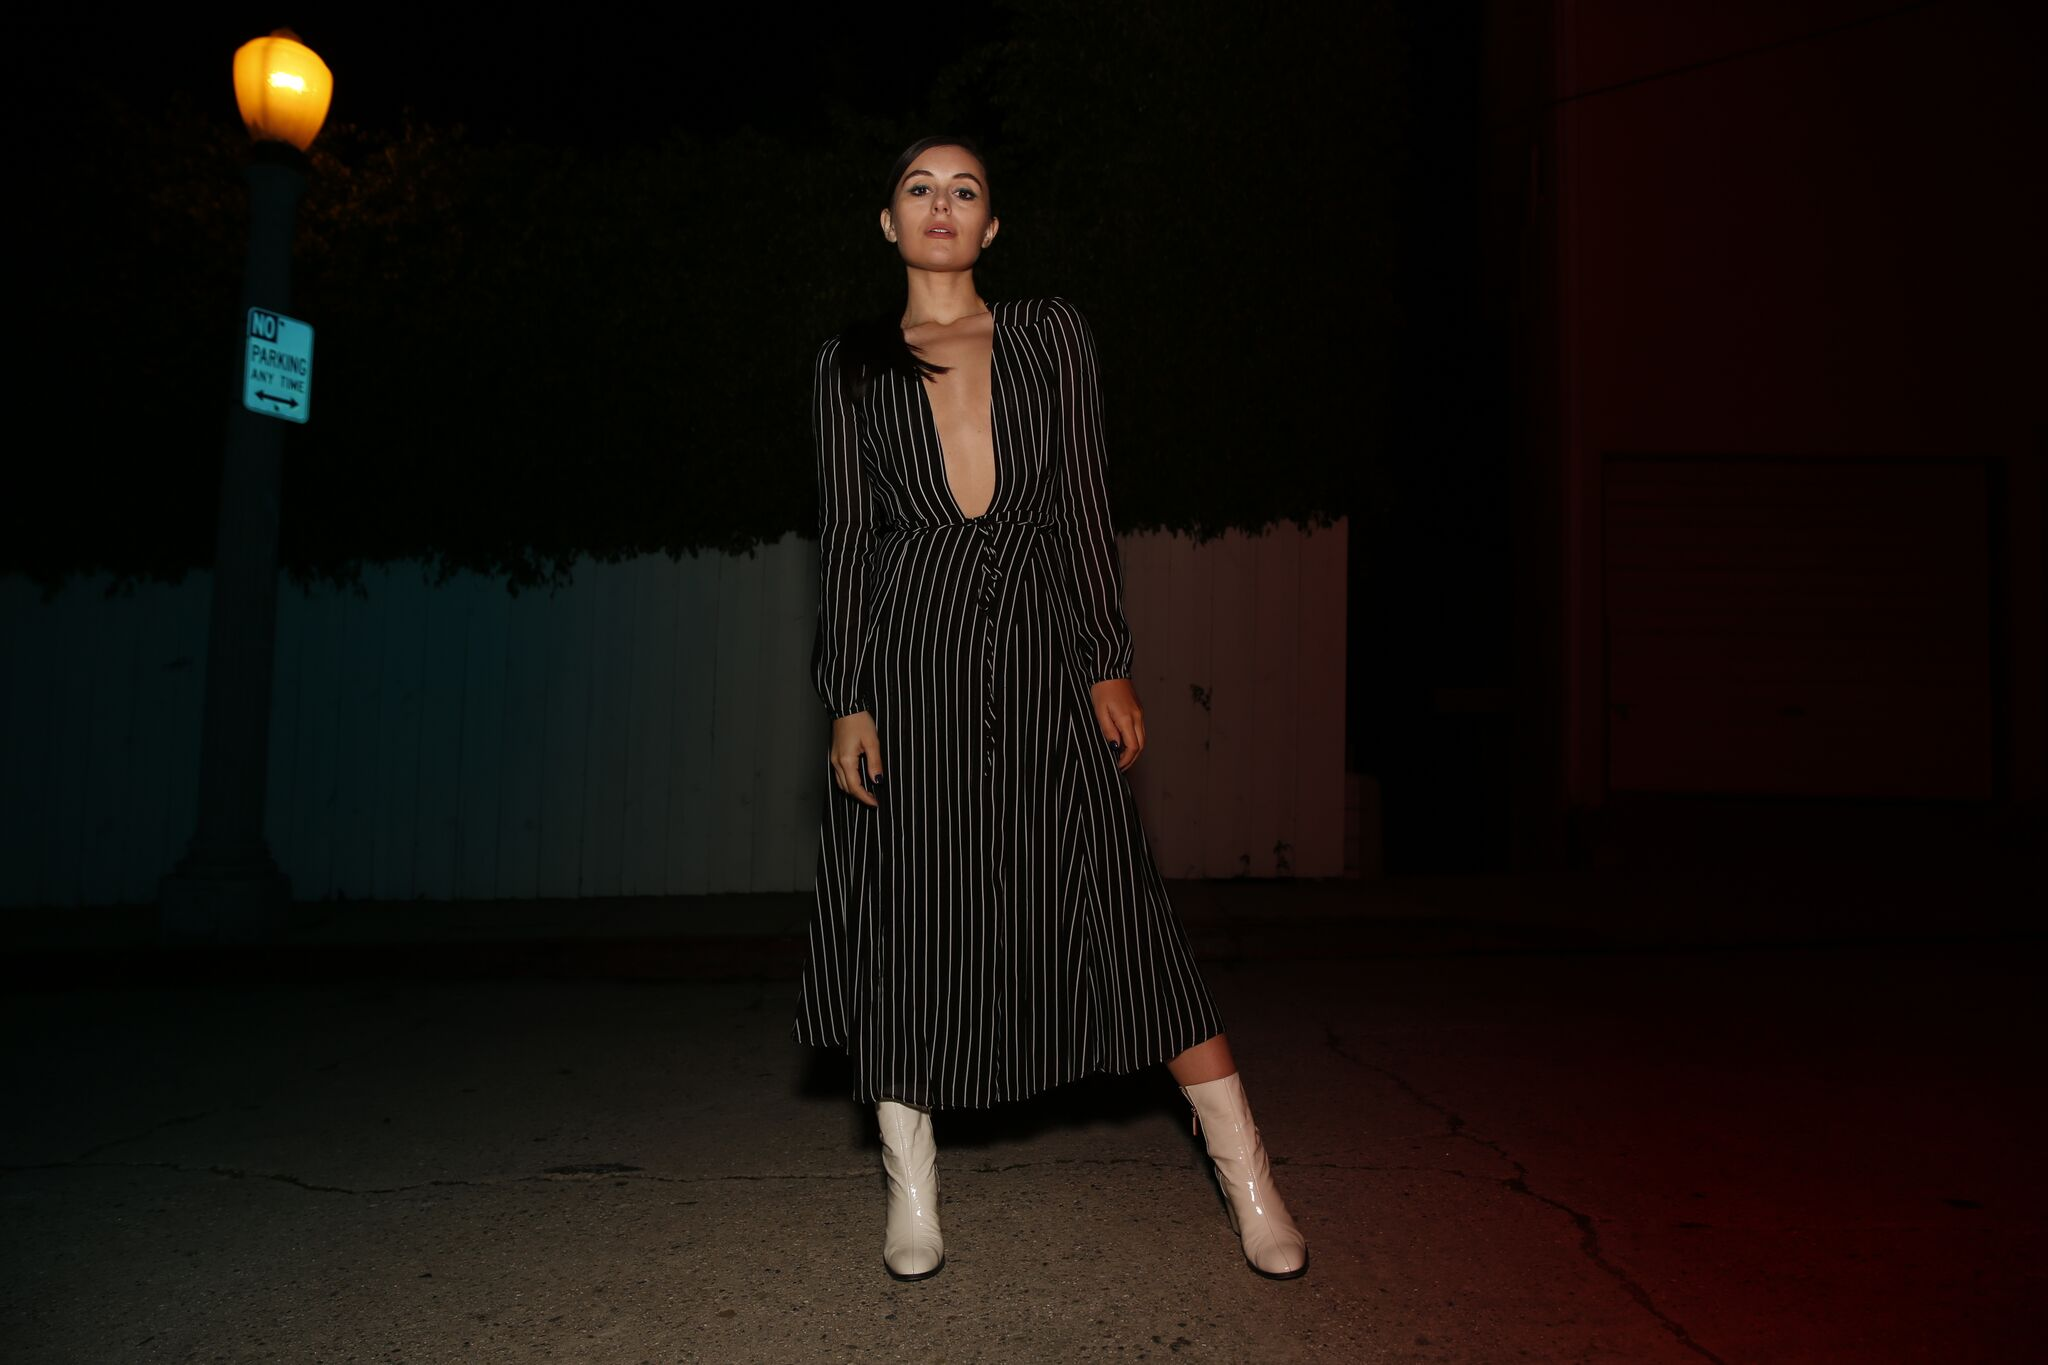 Marta Pozzan wearing a dress by Reformation